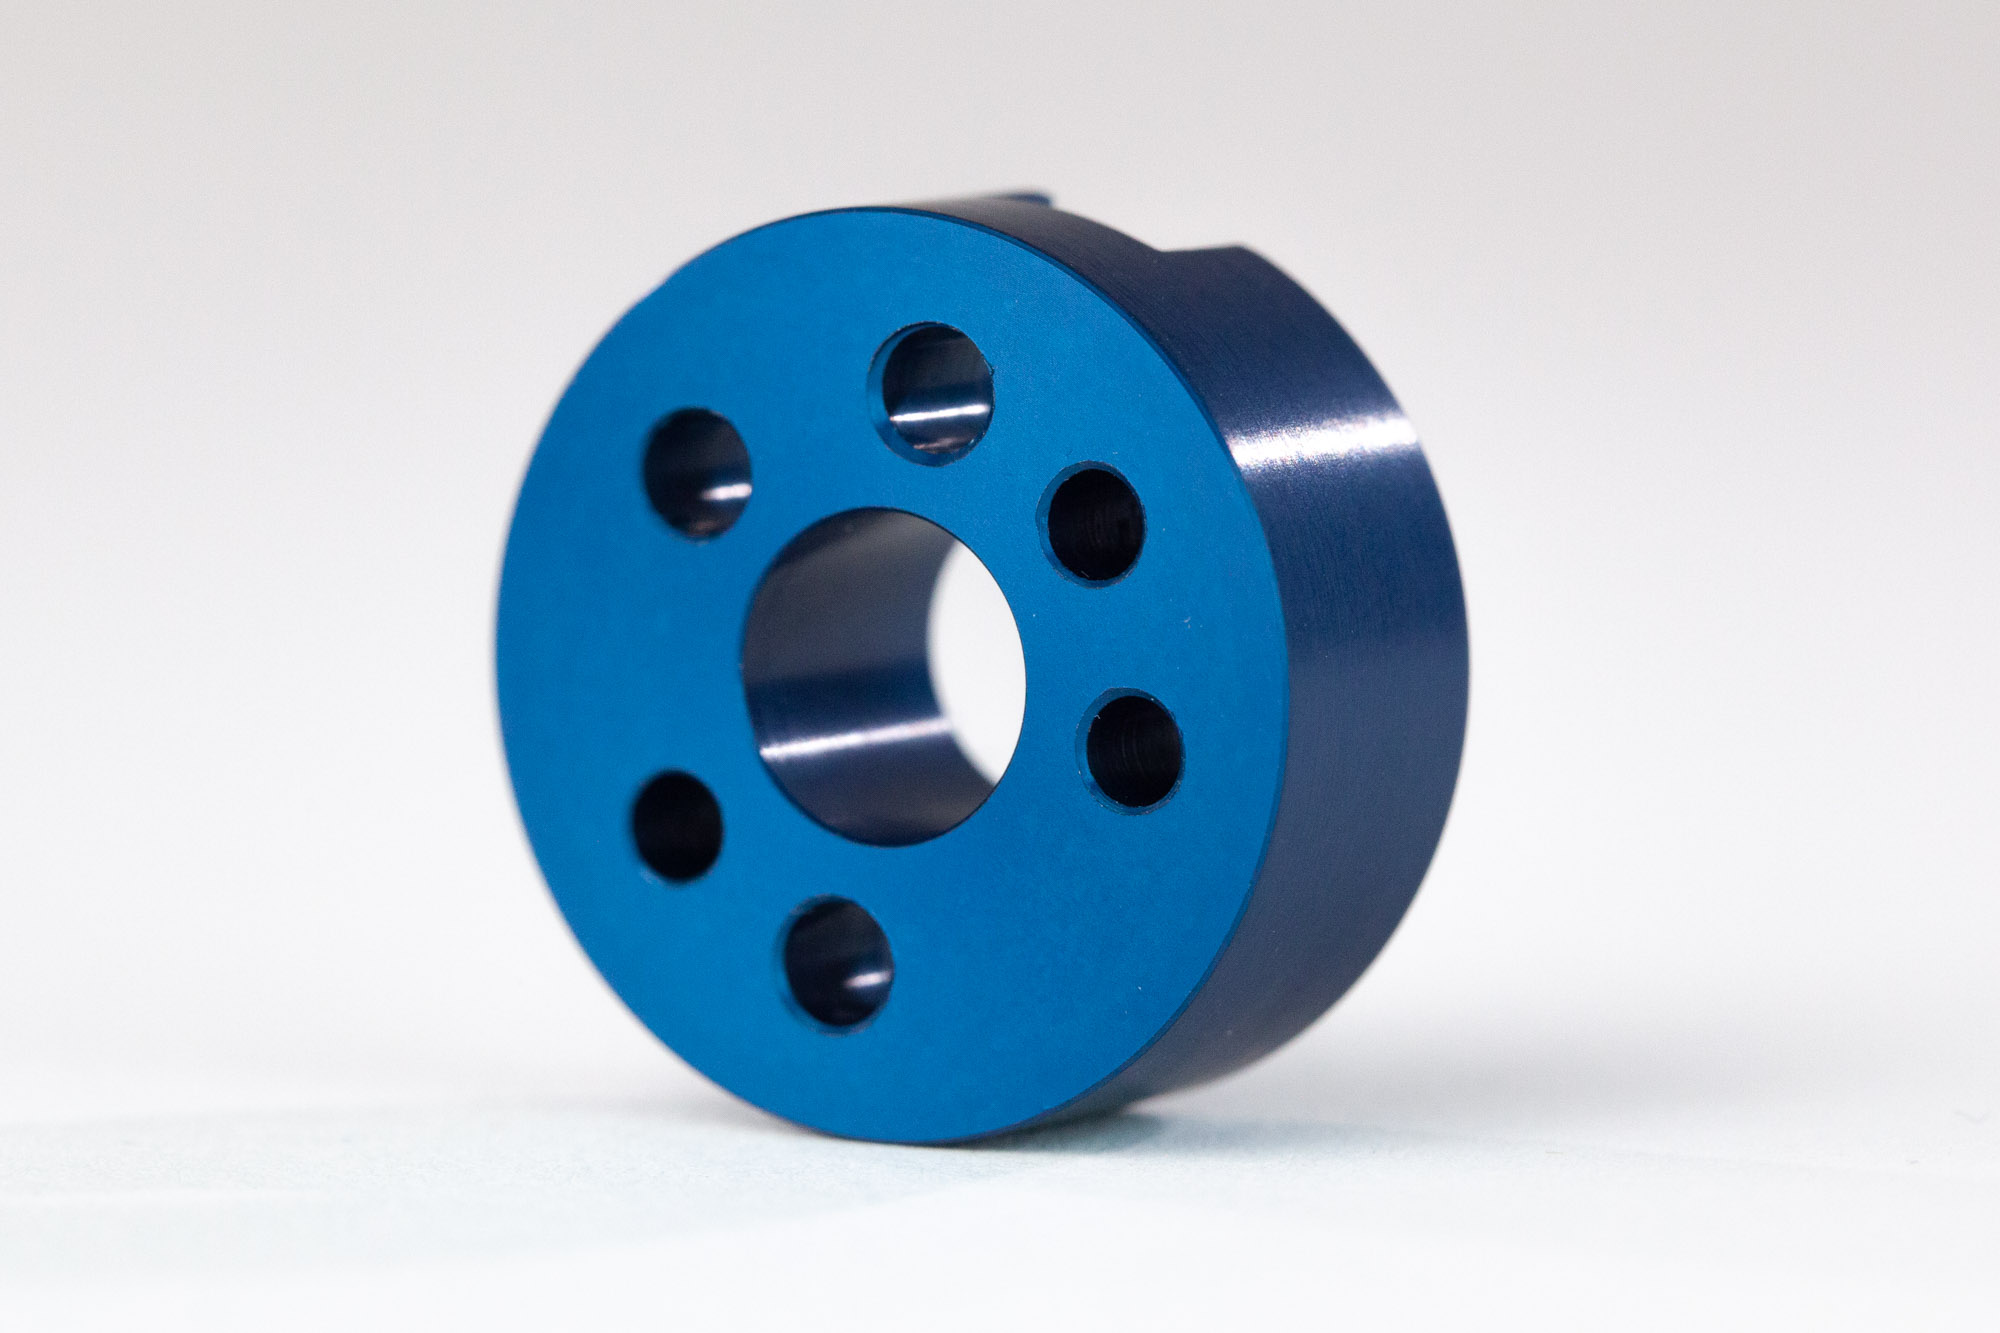 CNC finishing blue anodizing